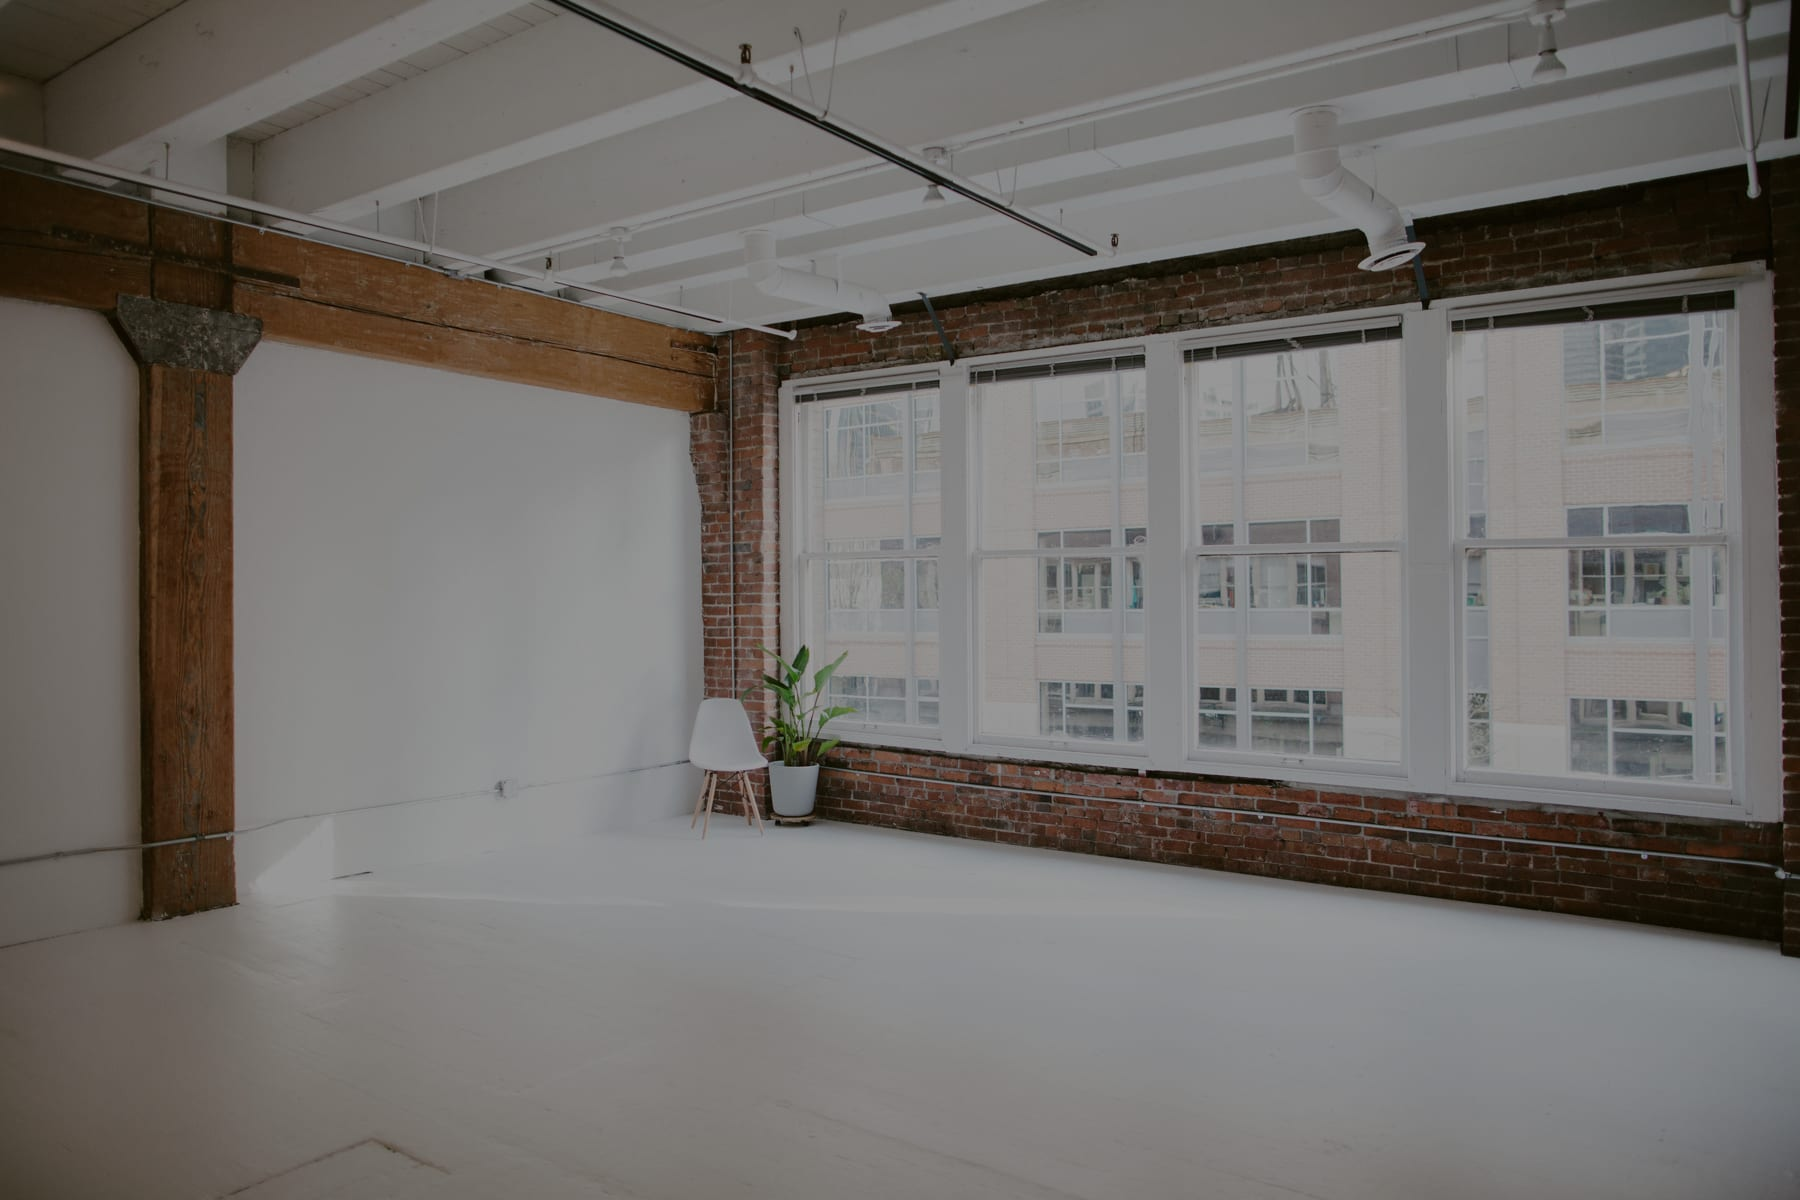 unique product shoot locations for rent new york ny